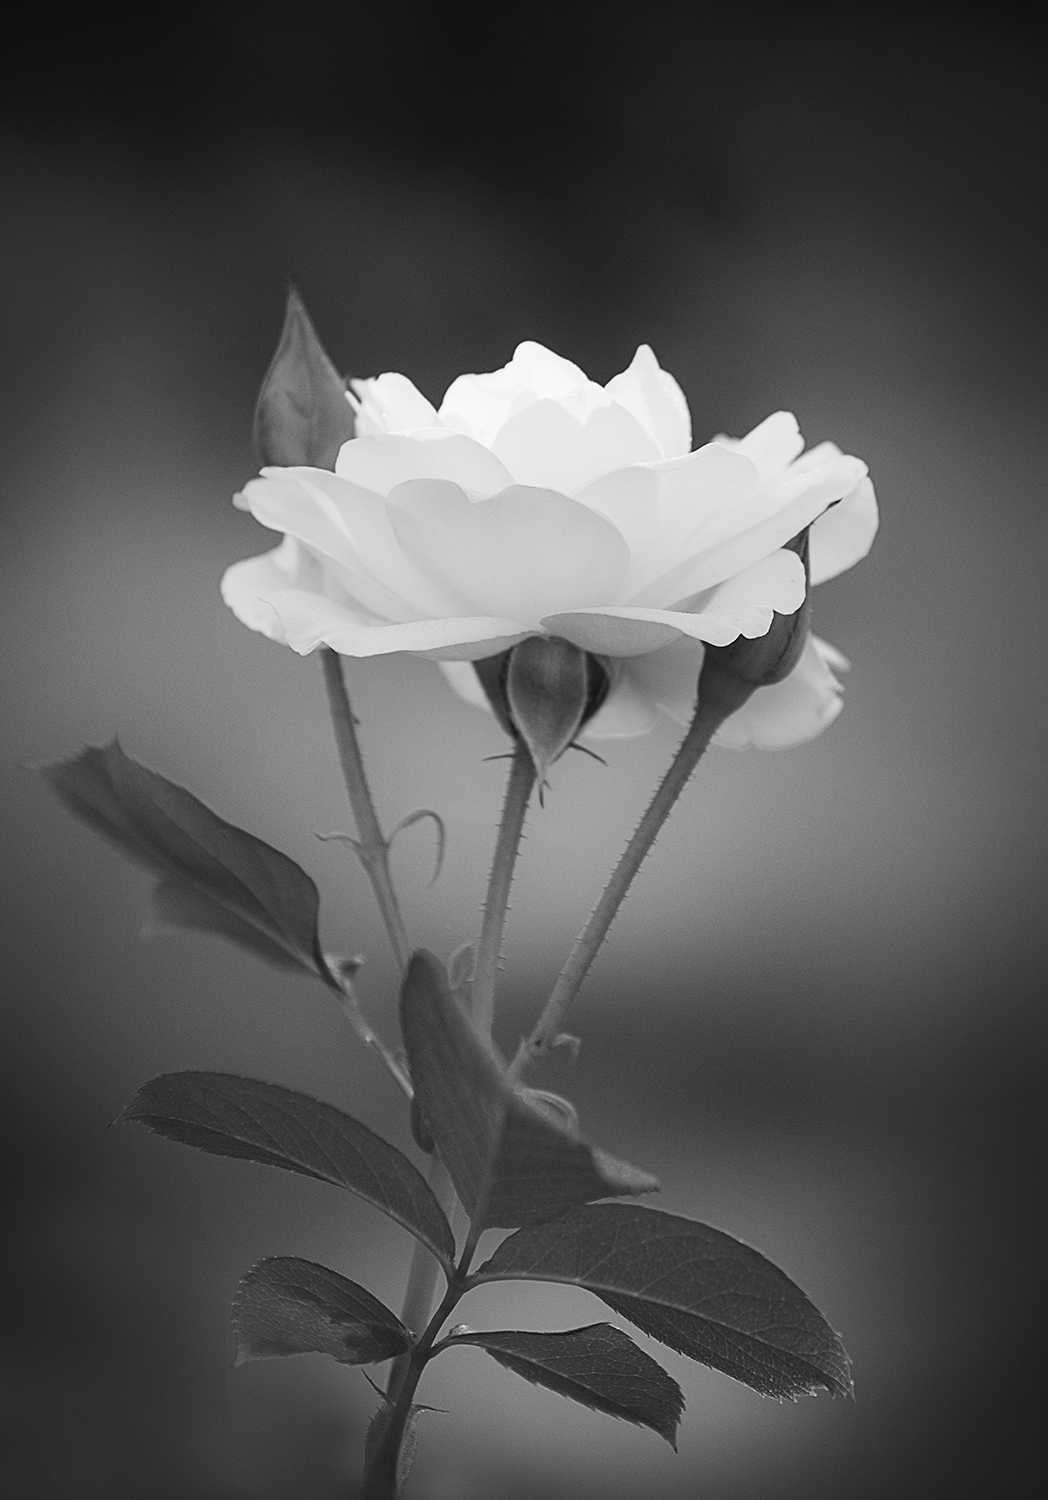 Purity and innocence tulip 4 by annette schreiber black and white photography